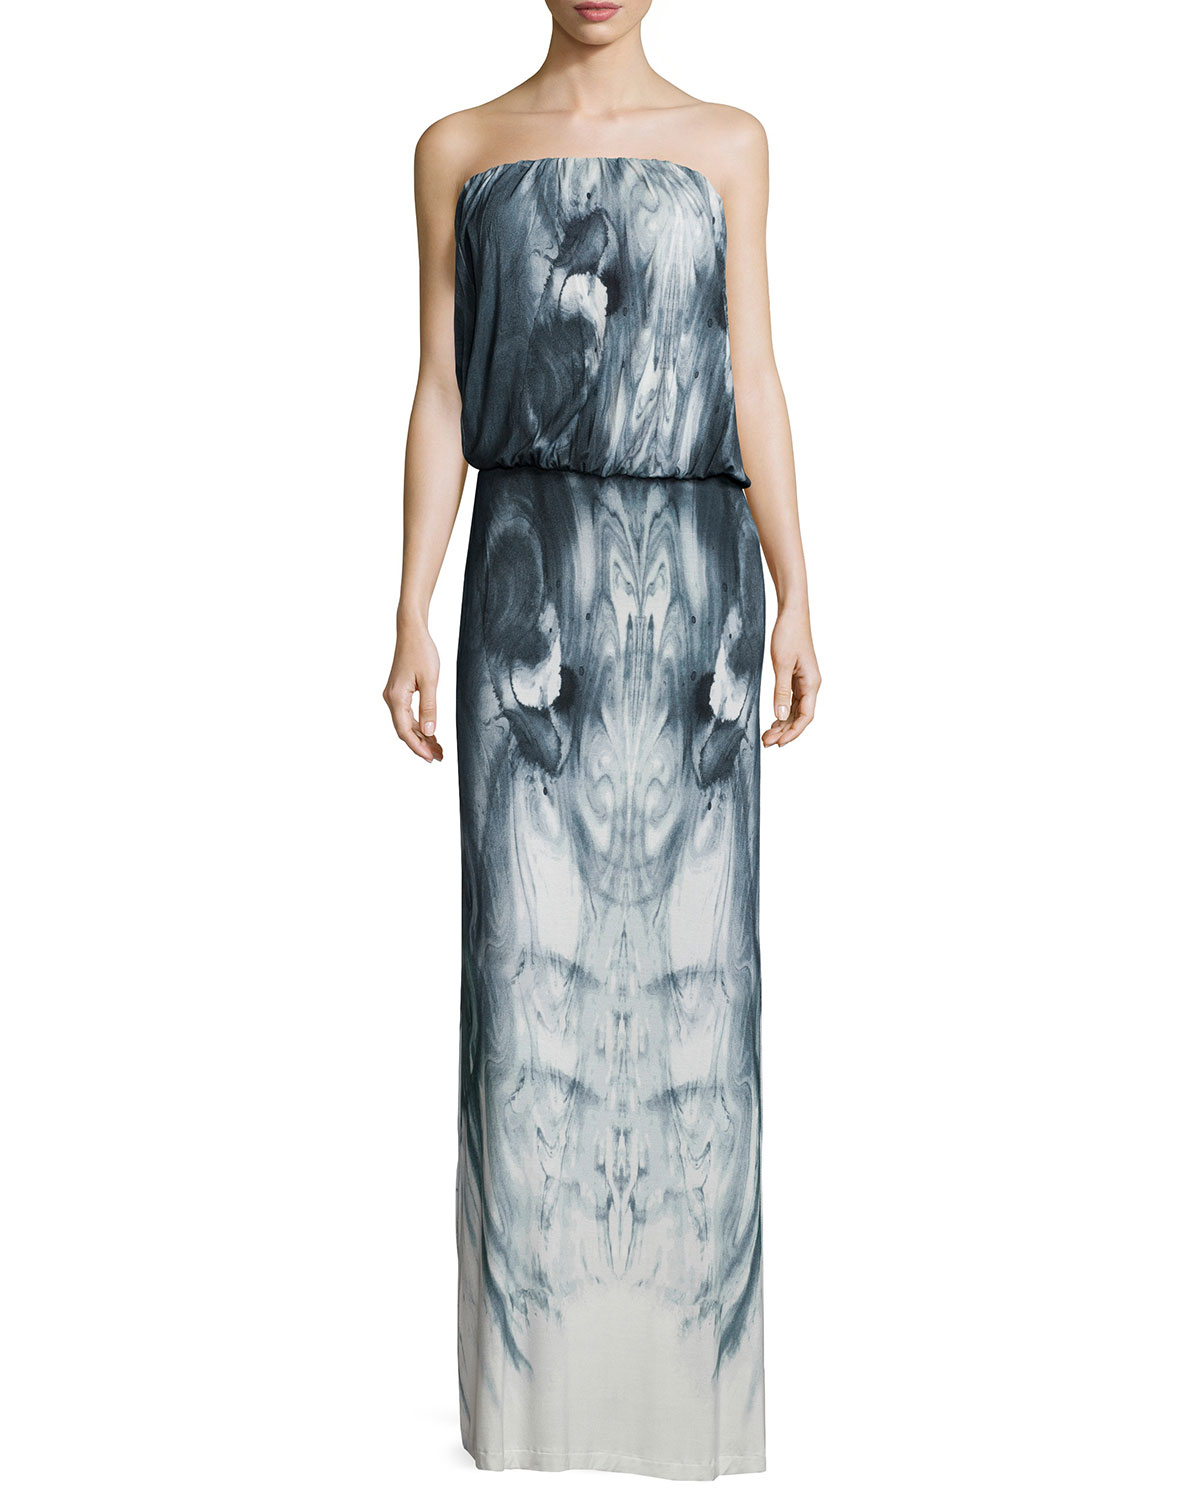 Young fabulous & broke Strapless Marble Maxi Dress in Gray ...